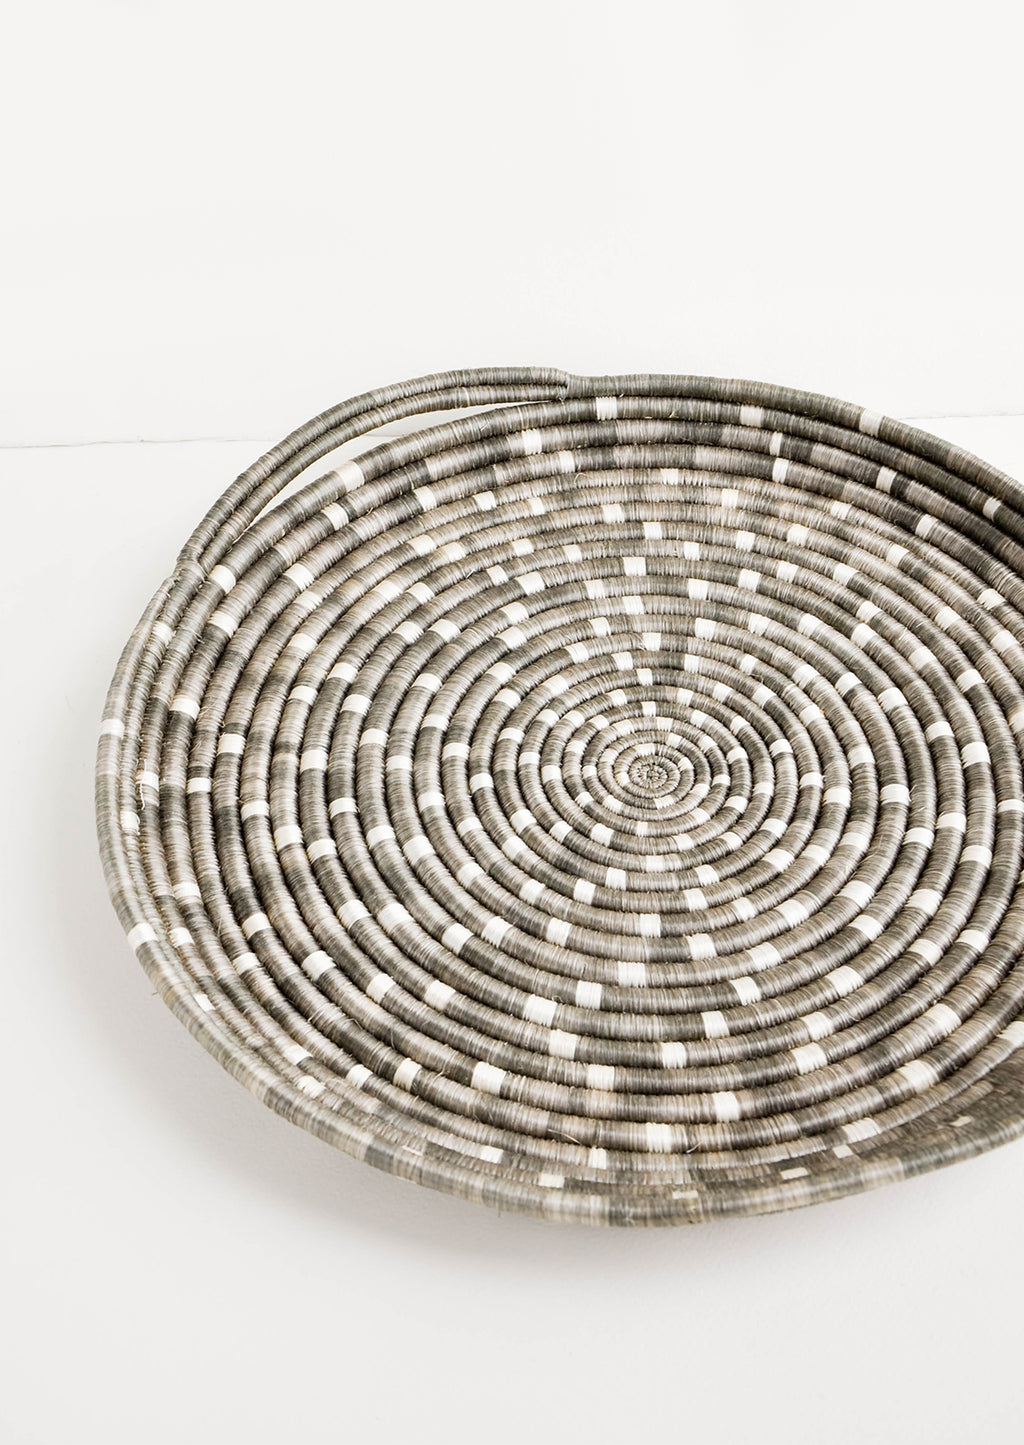 Taupe: Speckled Sweetgrass Serving Tray in Taupe - LEIF